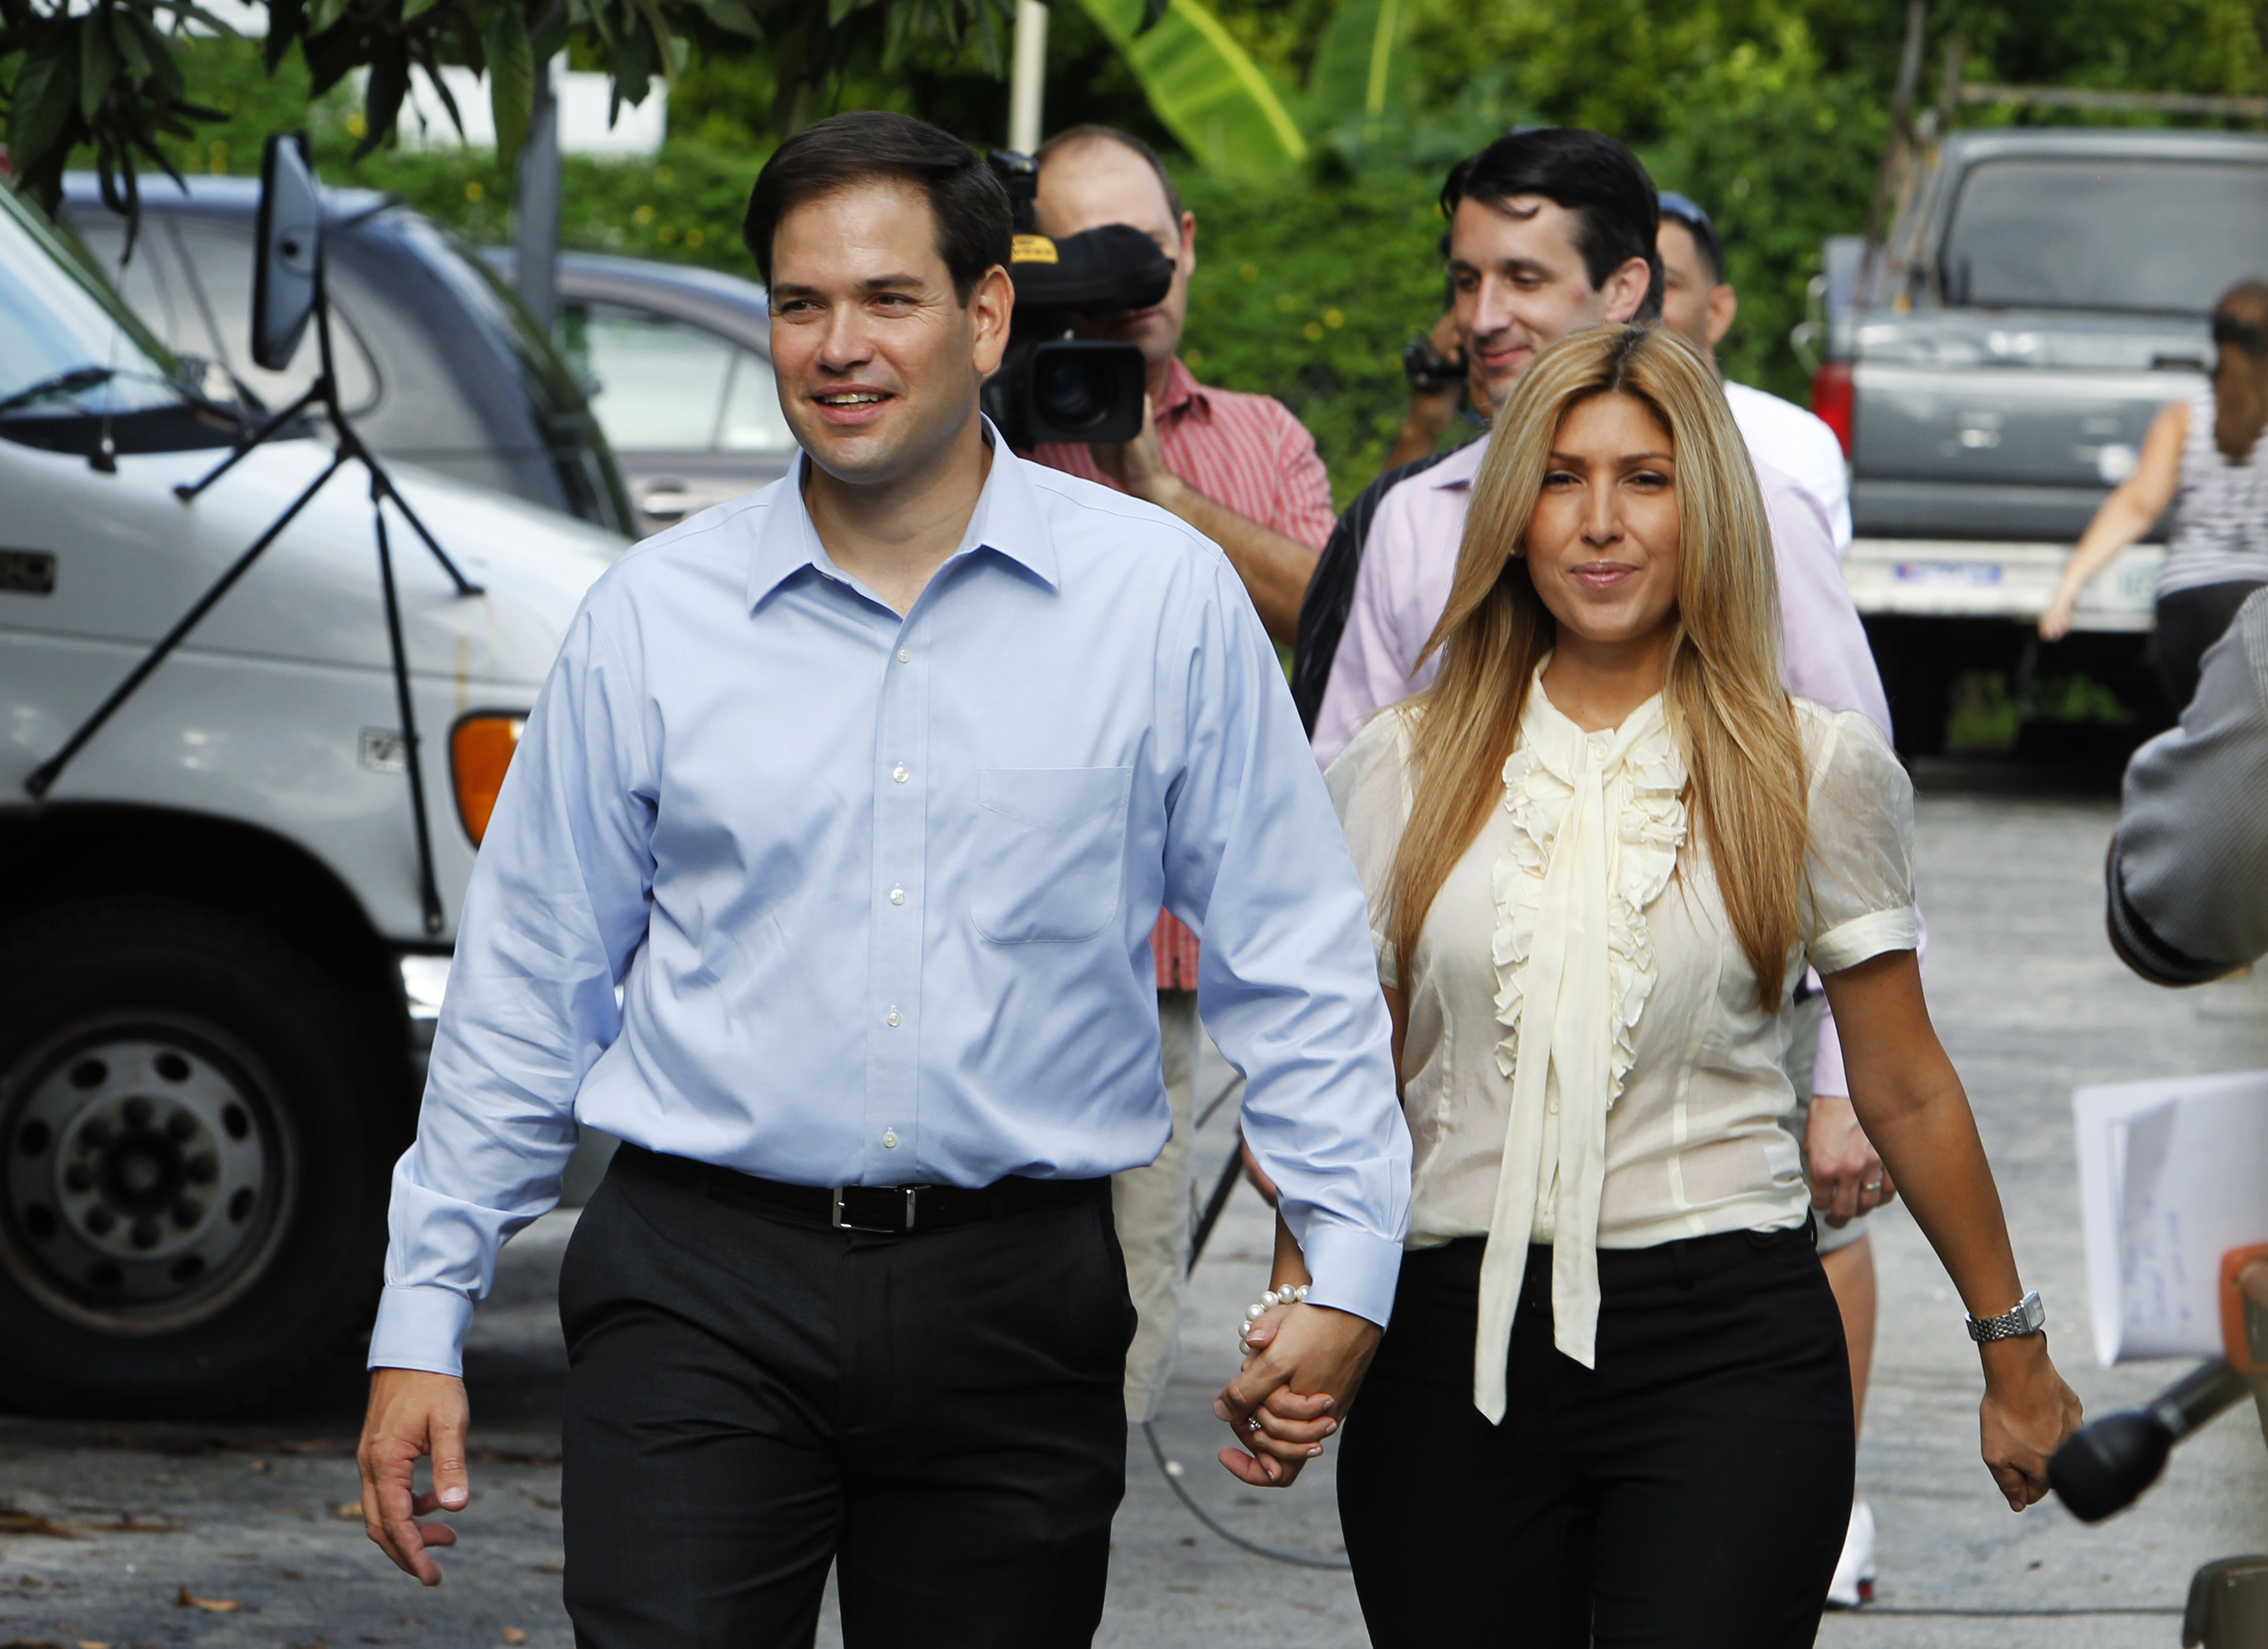 In Northeast Florida, Marco Rubio campaign is a family affair ...